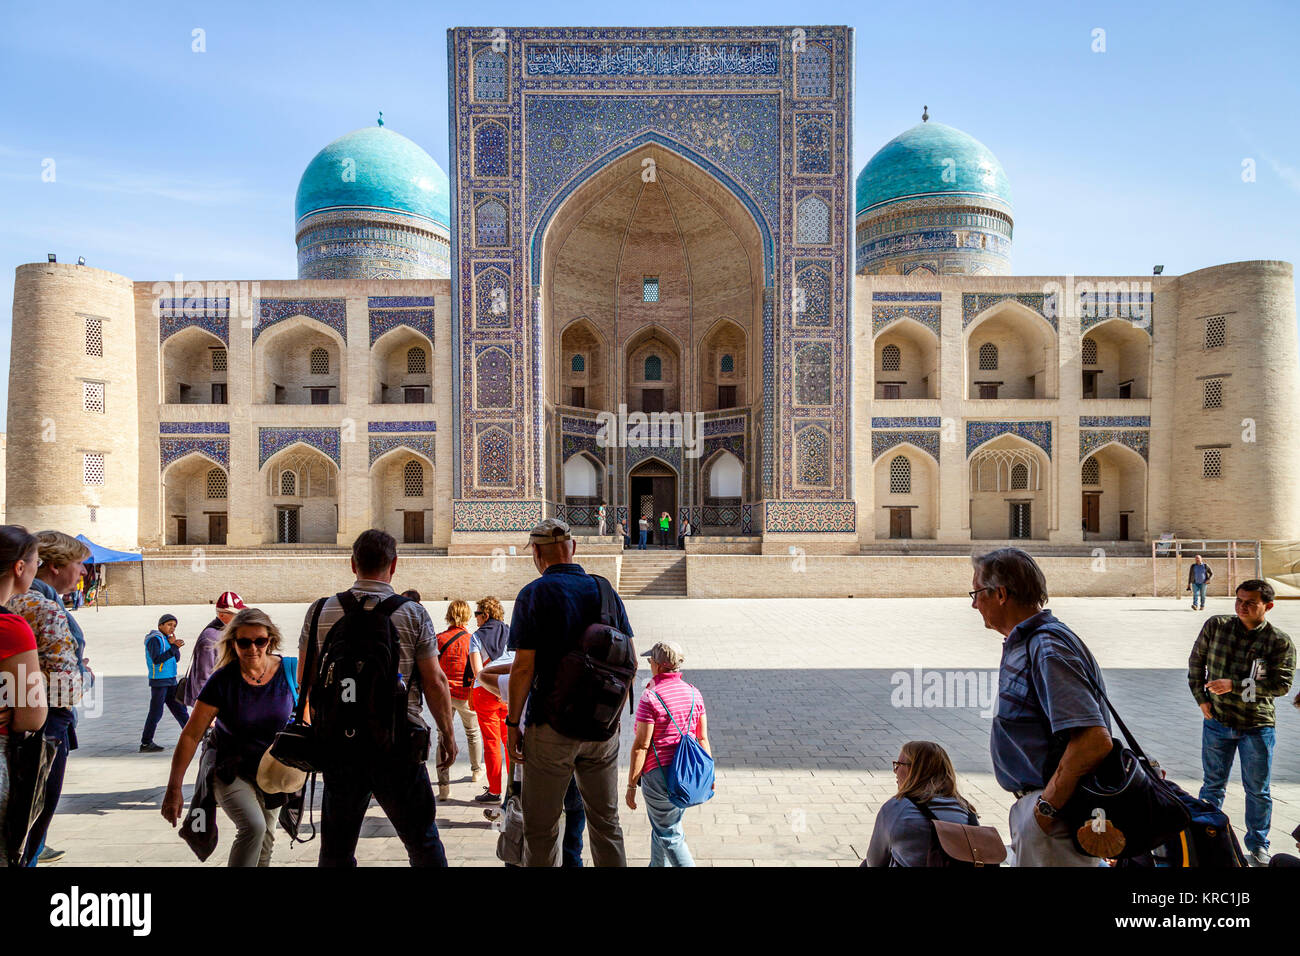 A Group Of Tourists In The Poi Kalyan With The Mir-i-Arab Madrassa In The Backround, Bukhara, Uzbekistan - Stock Image